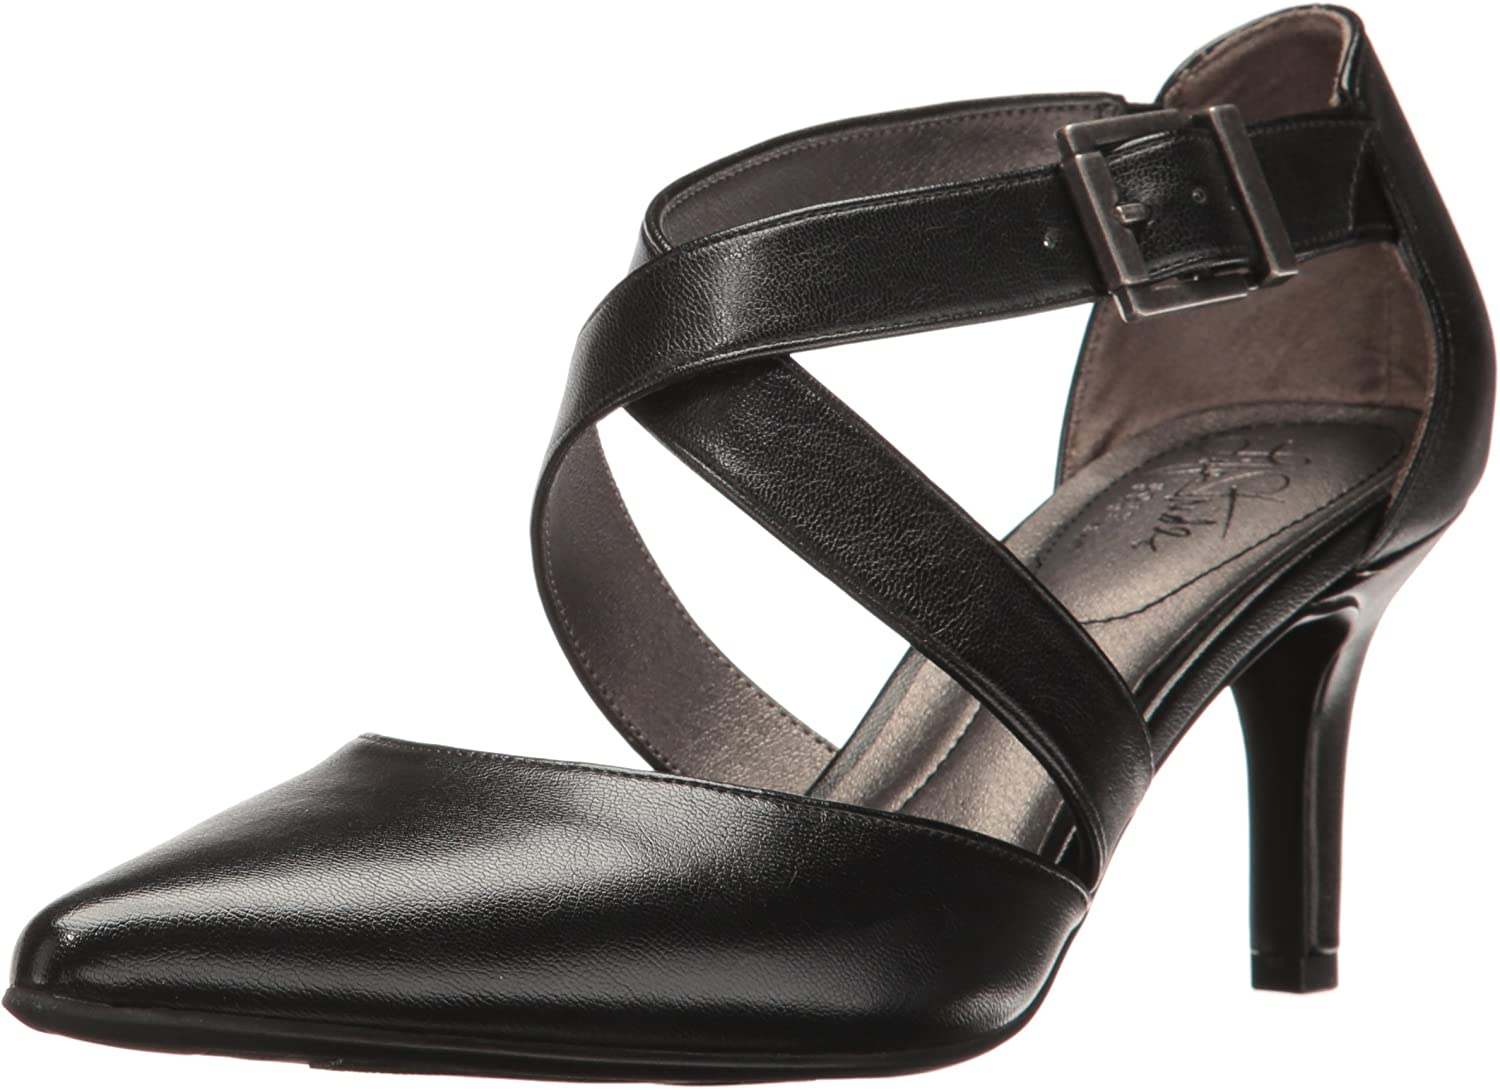 Max 57% OFF LifeStride Women's See Max 81% OFF Pump Dress This